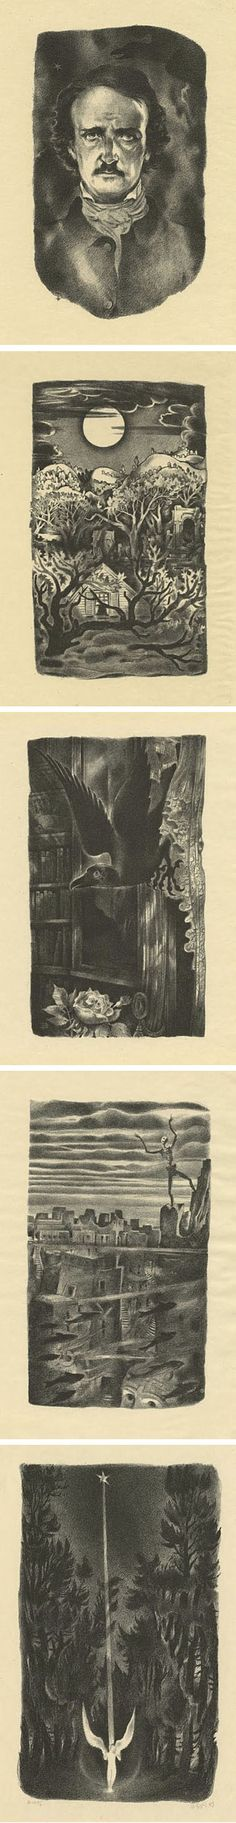 Lithographs of Edgar Allen Poe works, by Hugh Steiner-Prag (1880-1945). From top: Poe, The Sleeper, The Raven, The City in the Sea, Ulalume. Many more at link.